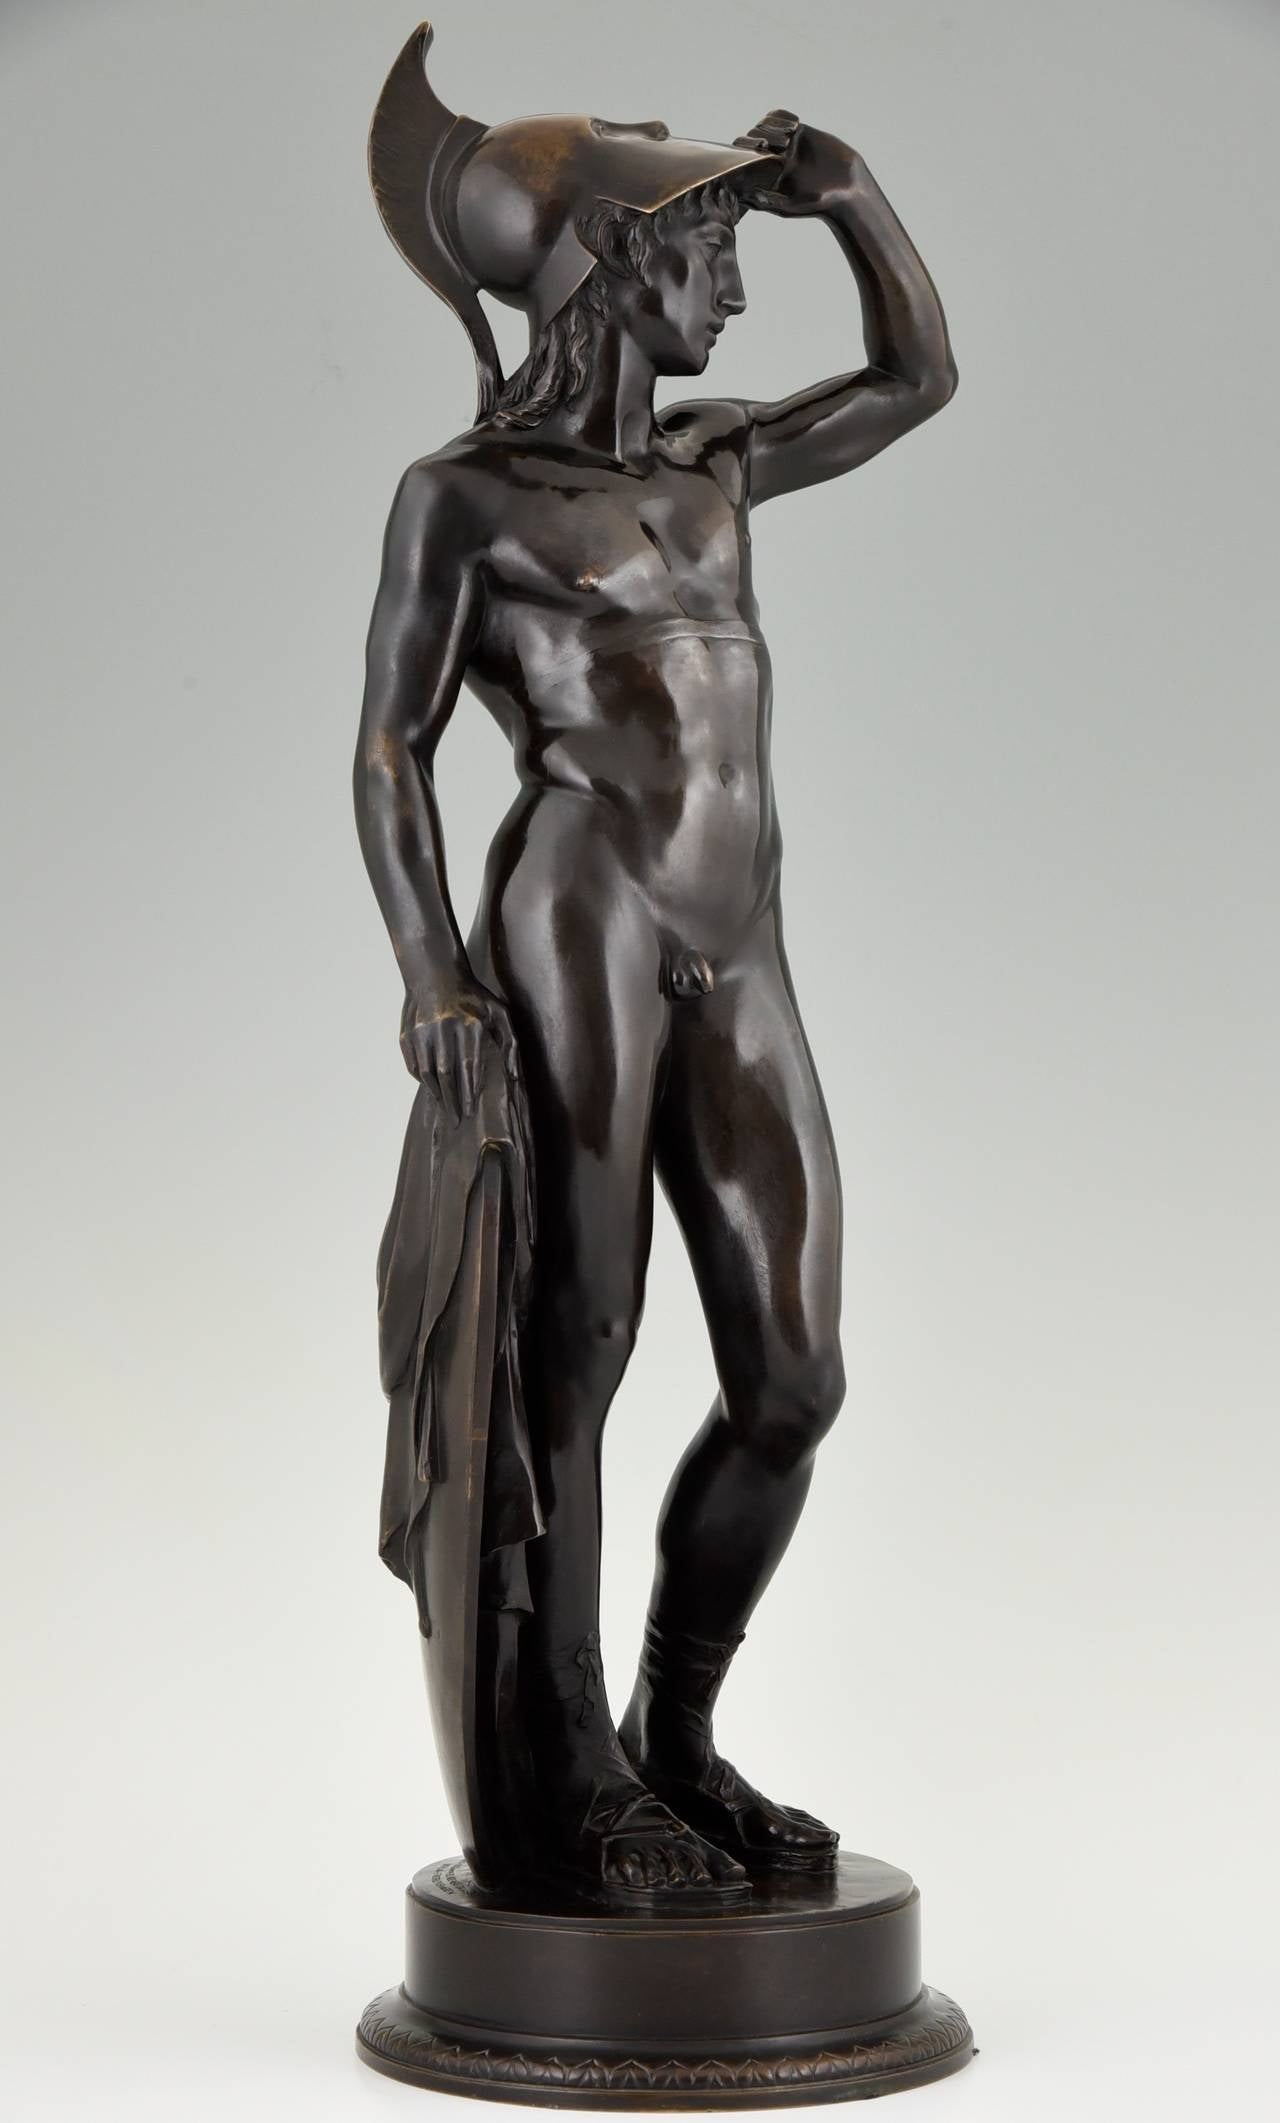 Patinated Antique Bronze Sculpture of a Male Nude by Alfred Raum, Rome, 1903 For Sale